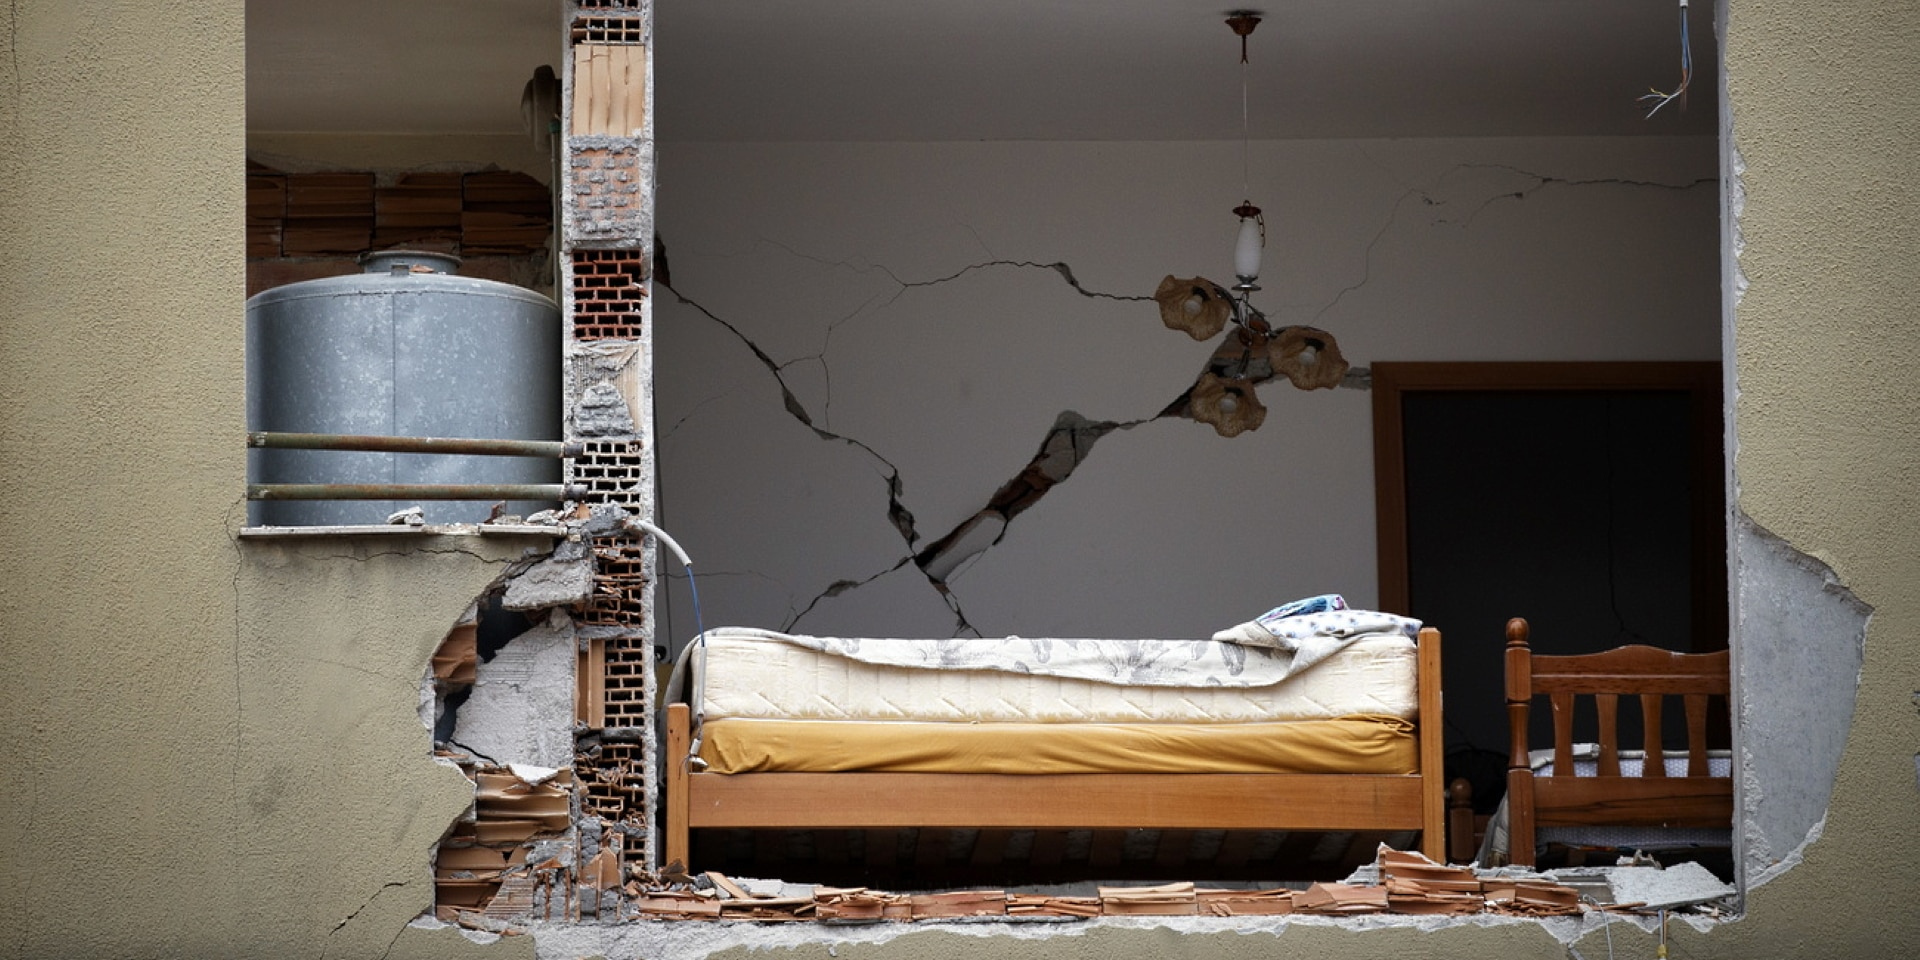 The earthquake tore open the front a building, where a bed is now visible.